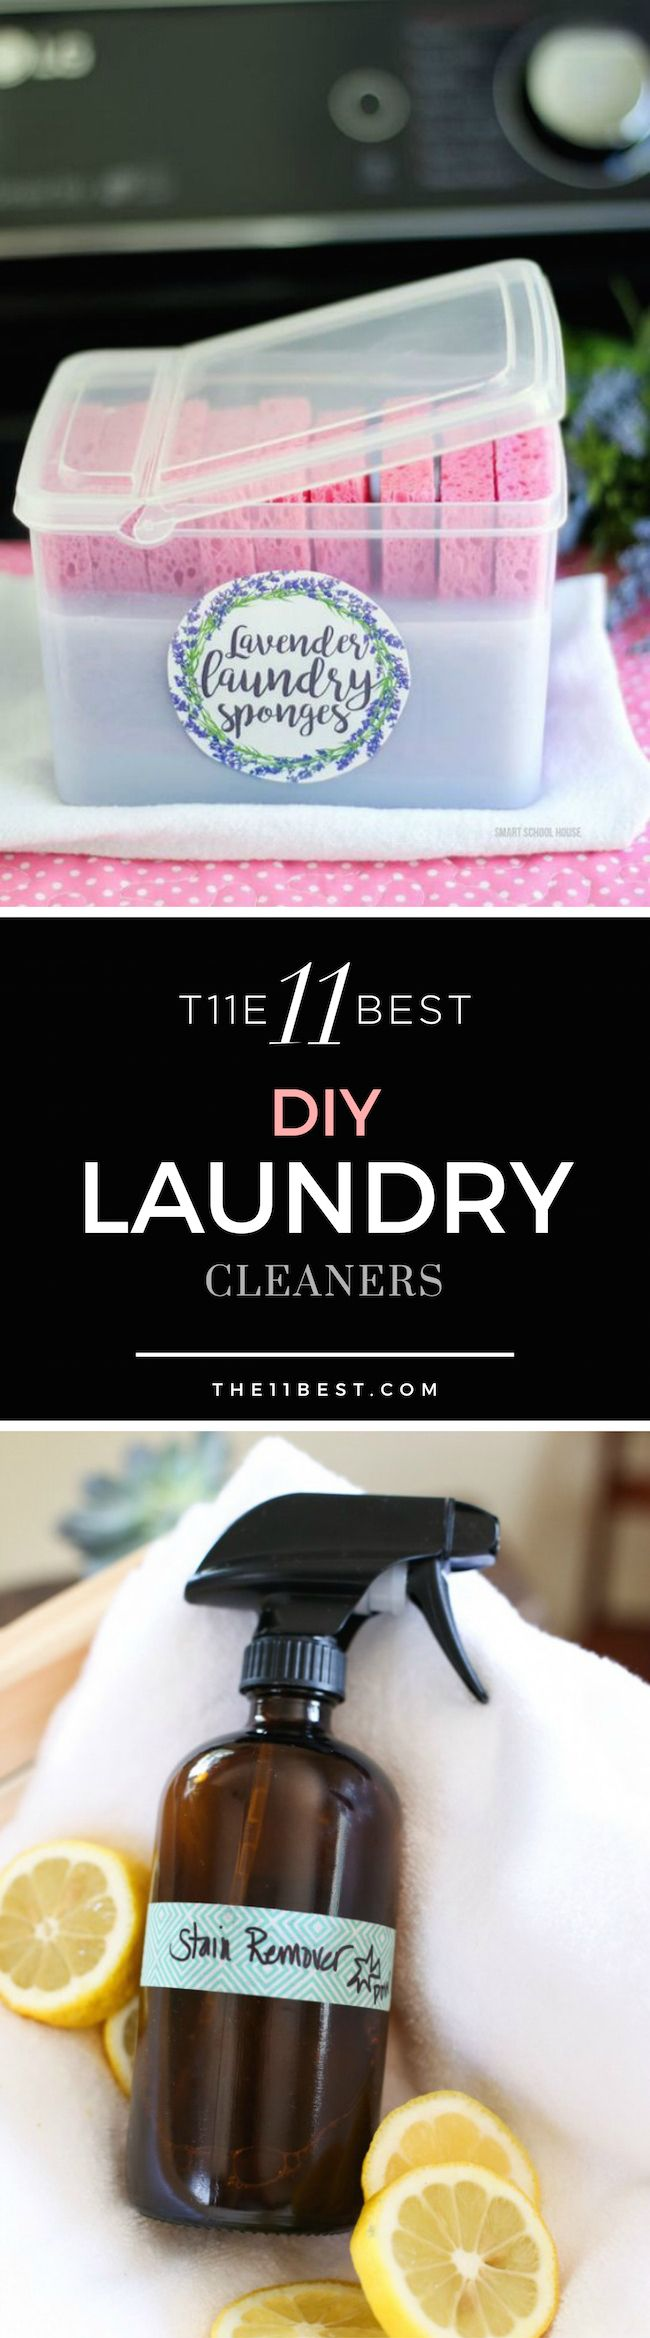 The 11 Best DIY Laundry cleaners. DIY fabric softener sponges, DIY laundry stain remover, and DIY laundry detergent ideas.